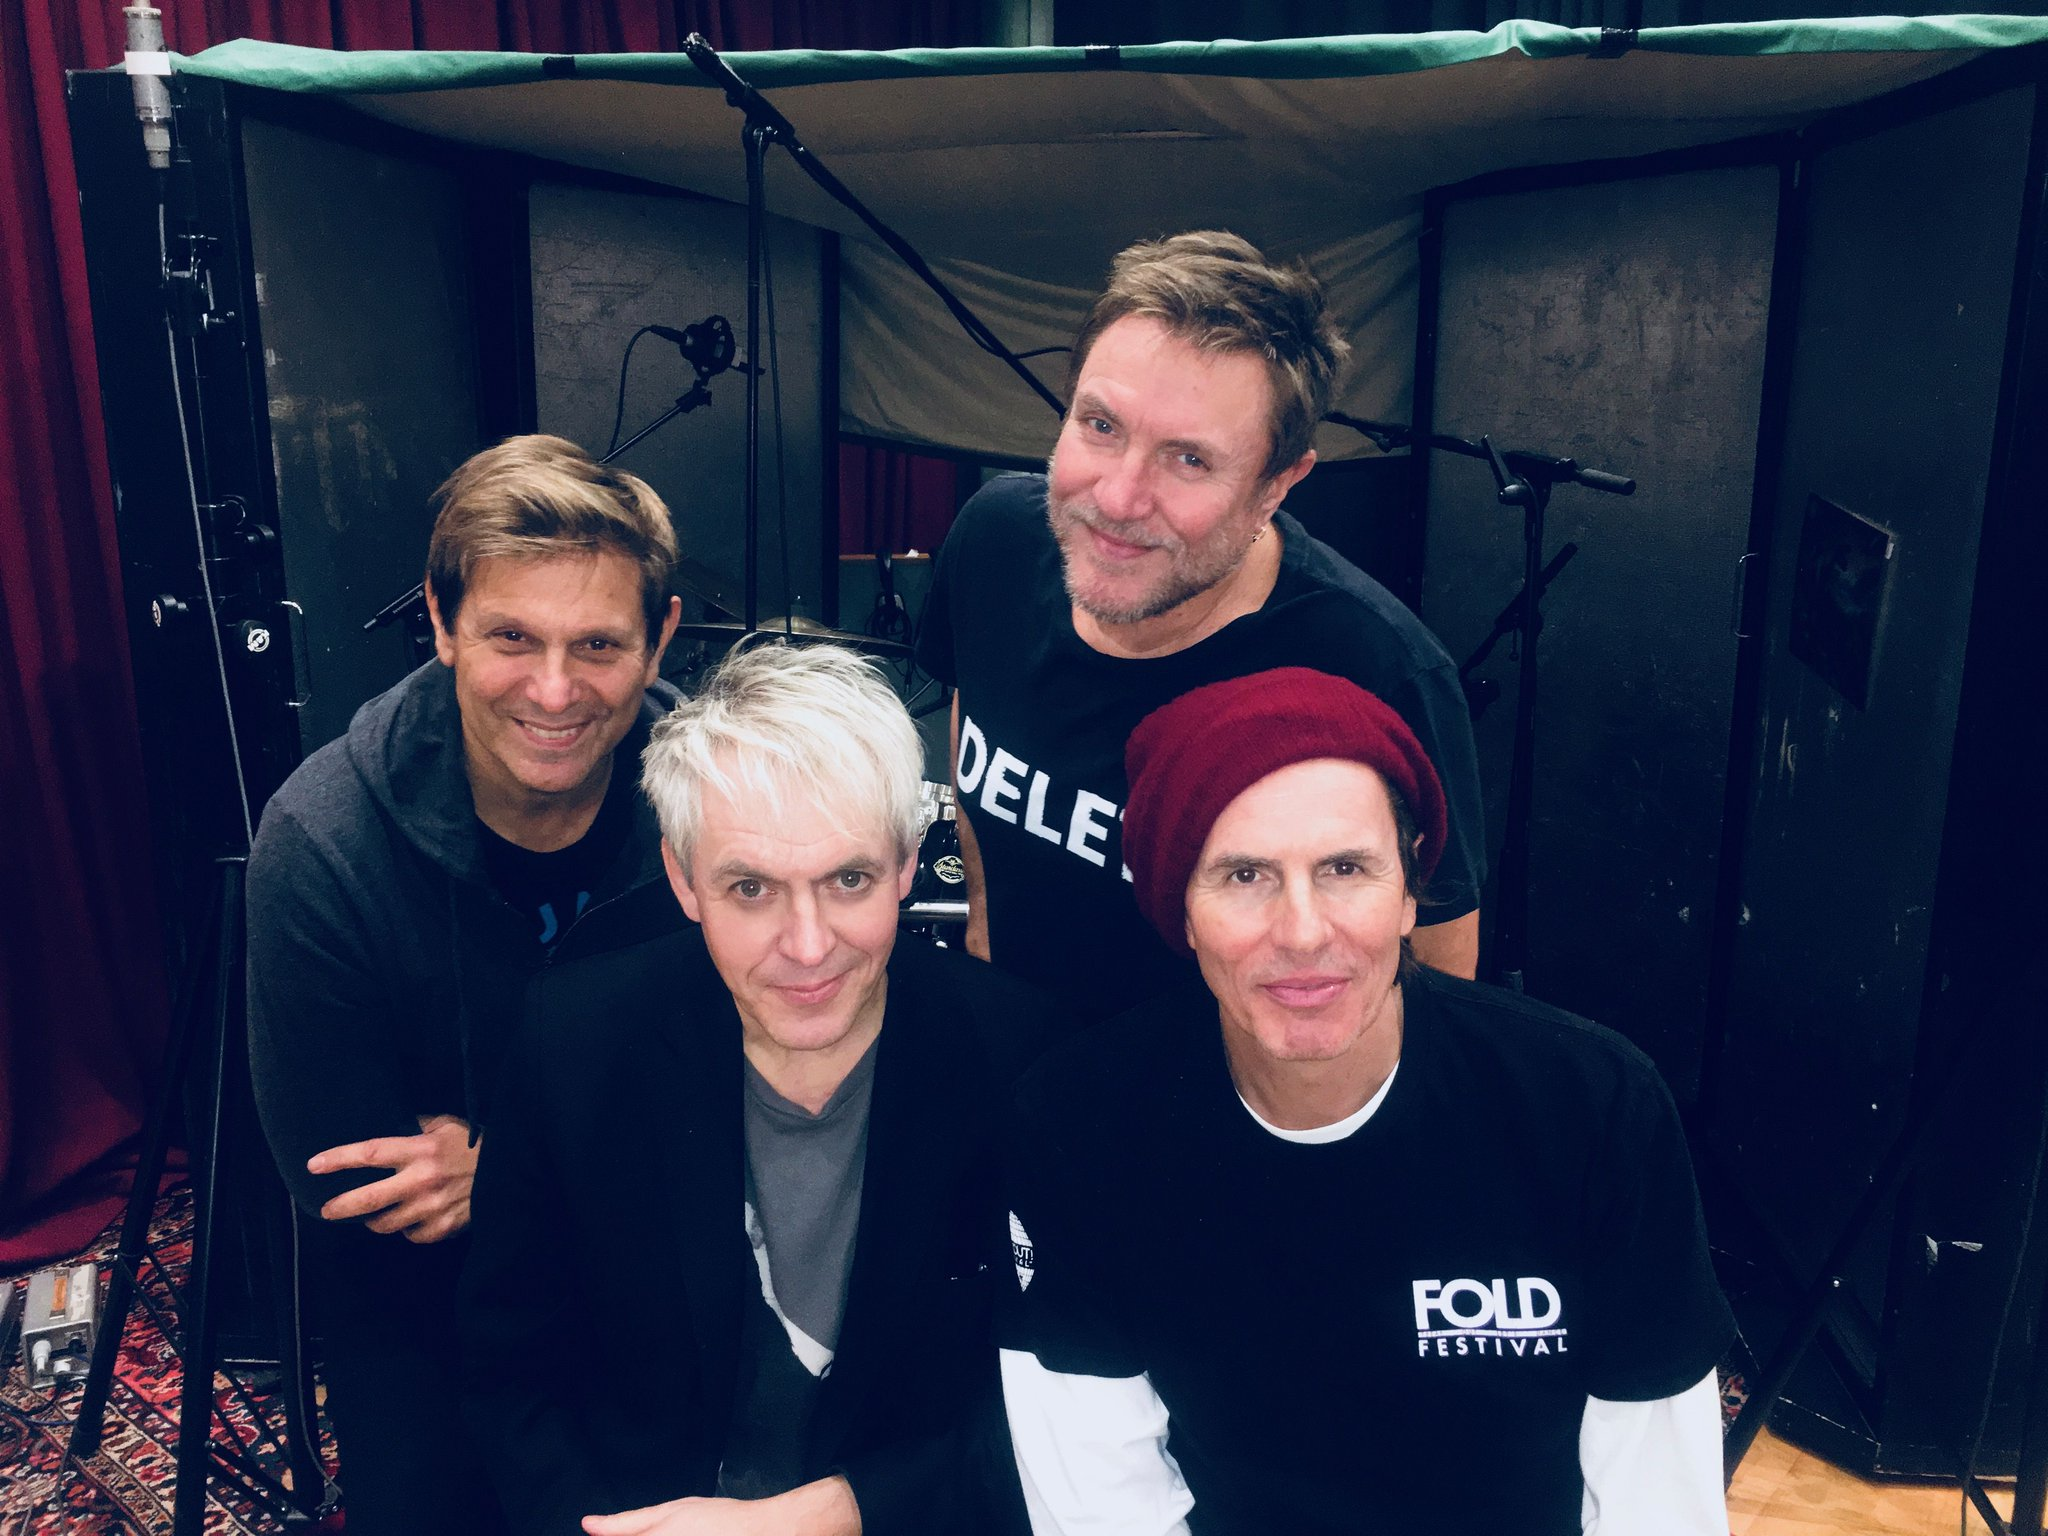 @duranduran 2018,  in the studio working on new music.  #DD2018 https://t.co/ey1kbBaUXe